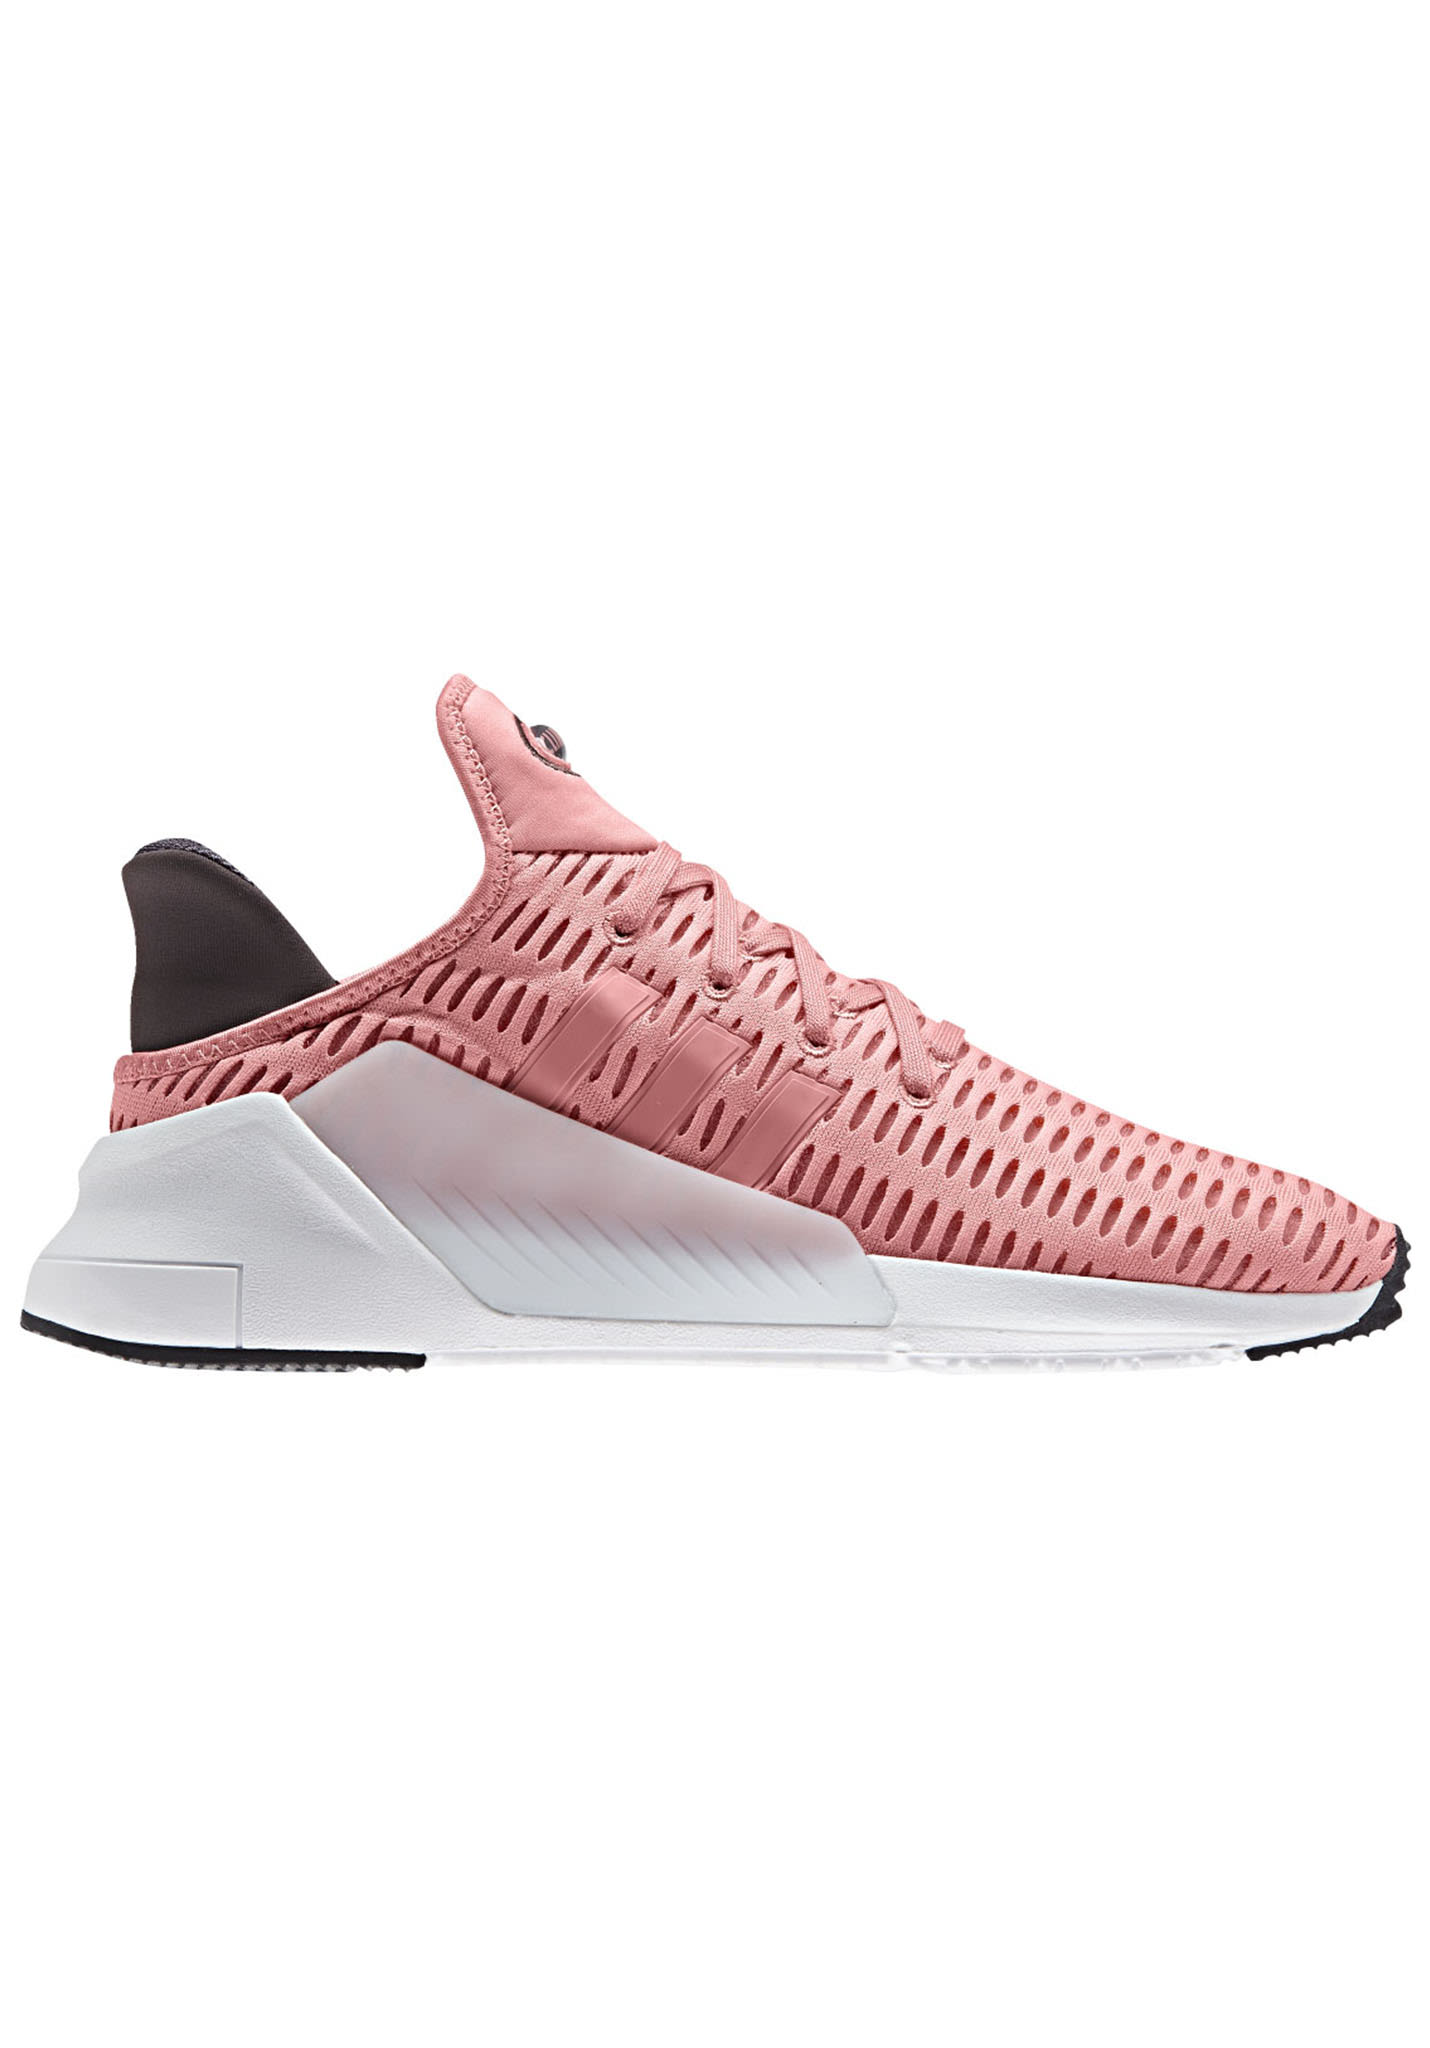 9241a872625 ... reduced adidas climacool sneakers for women pink planet sports 2117d  0e519